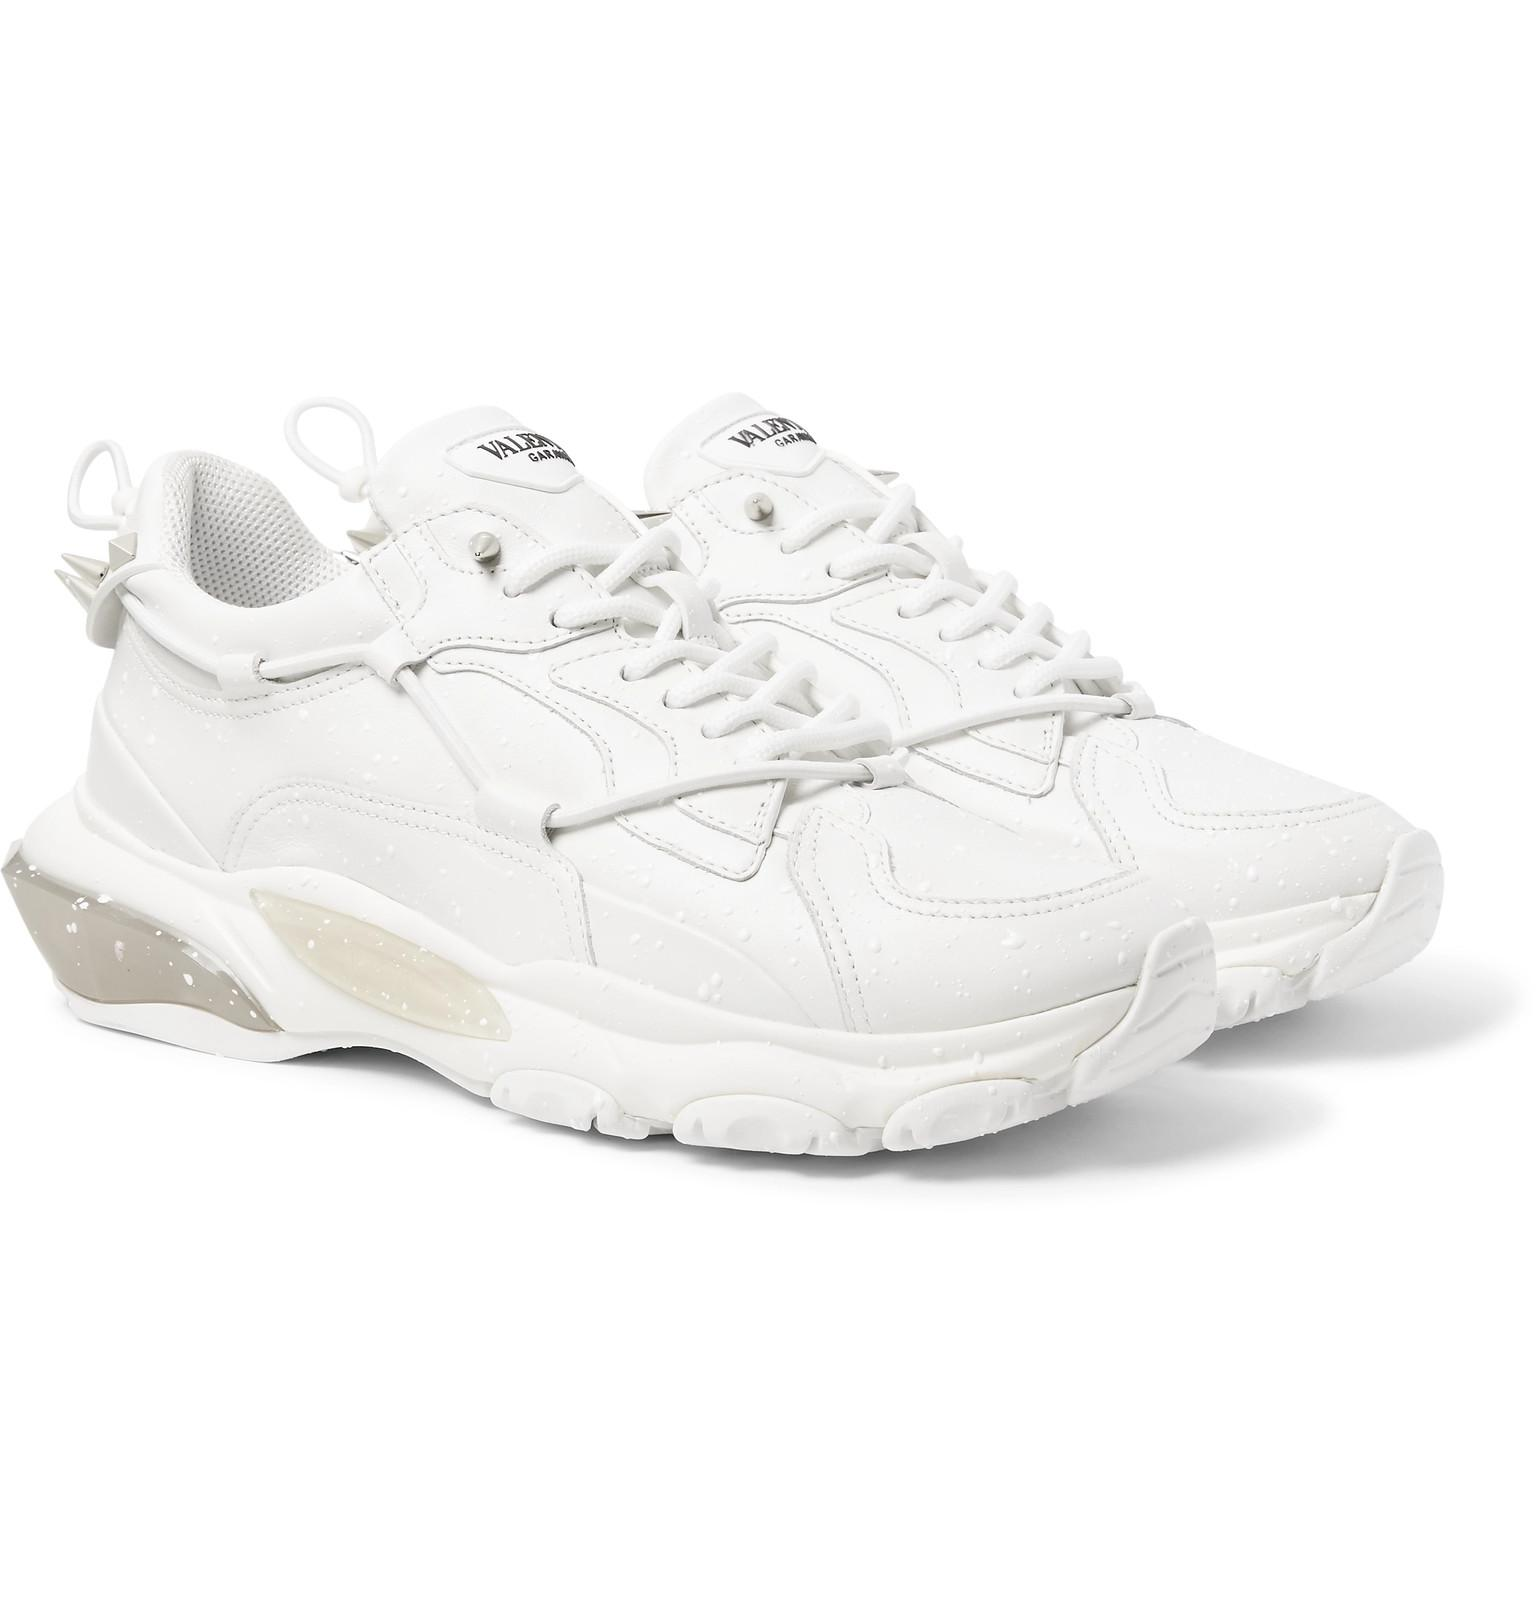 8fe5f9eee2c28 Valentino Garavani Bounce Leather And Mesh Sneakers in White for Men ...